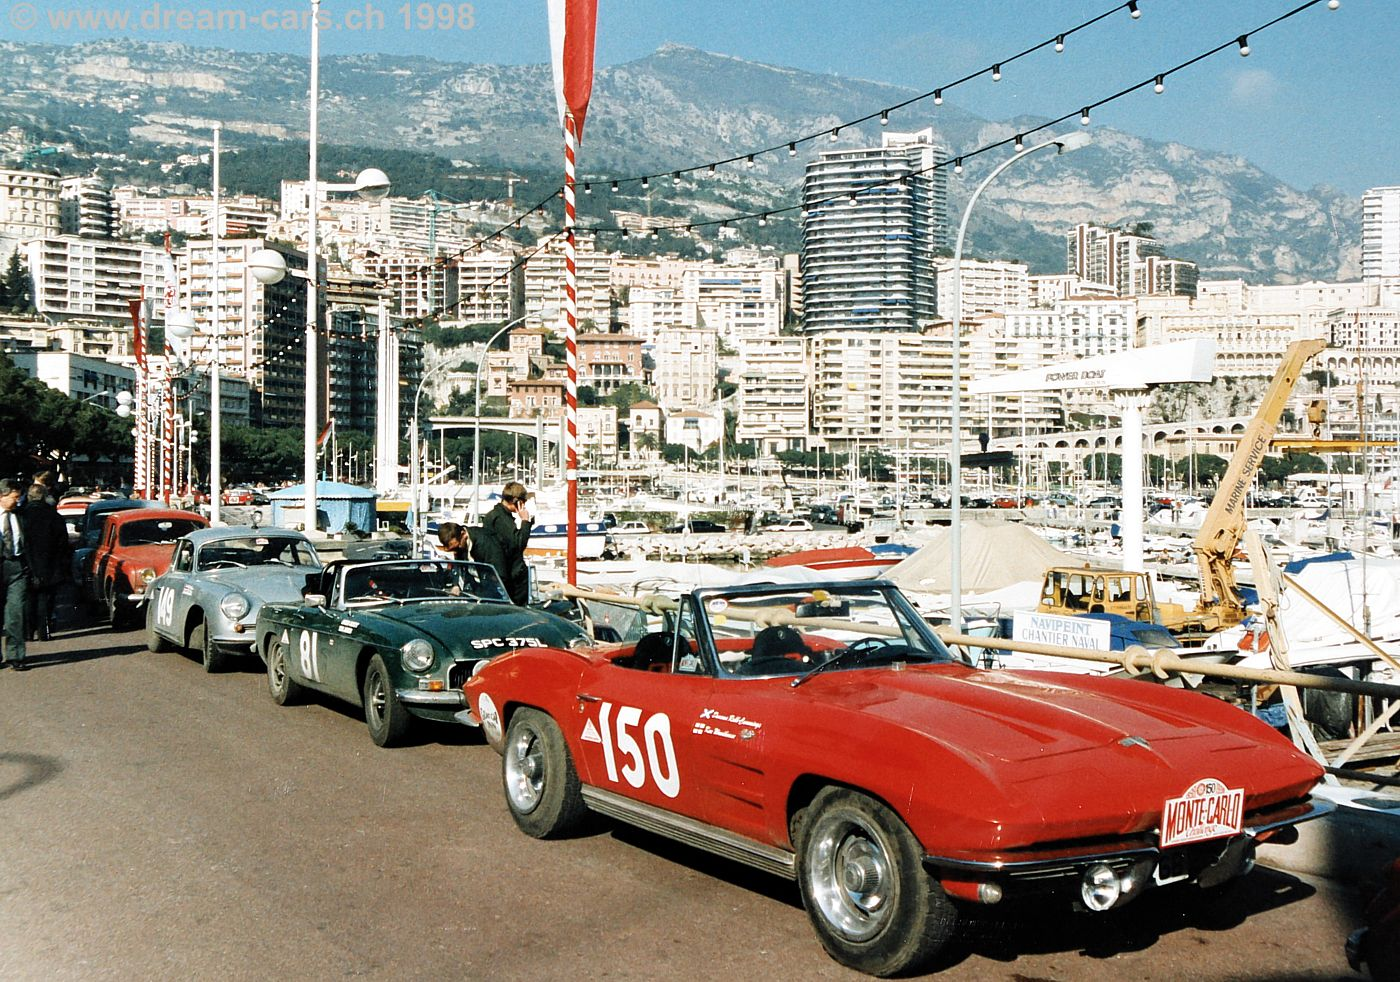 Winter Challenge to Monte Carlo 1998